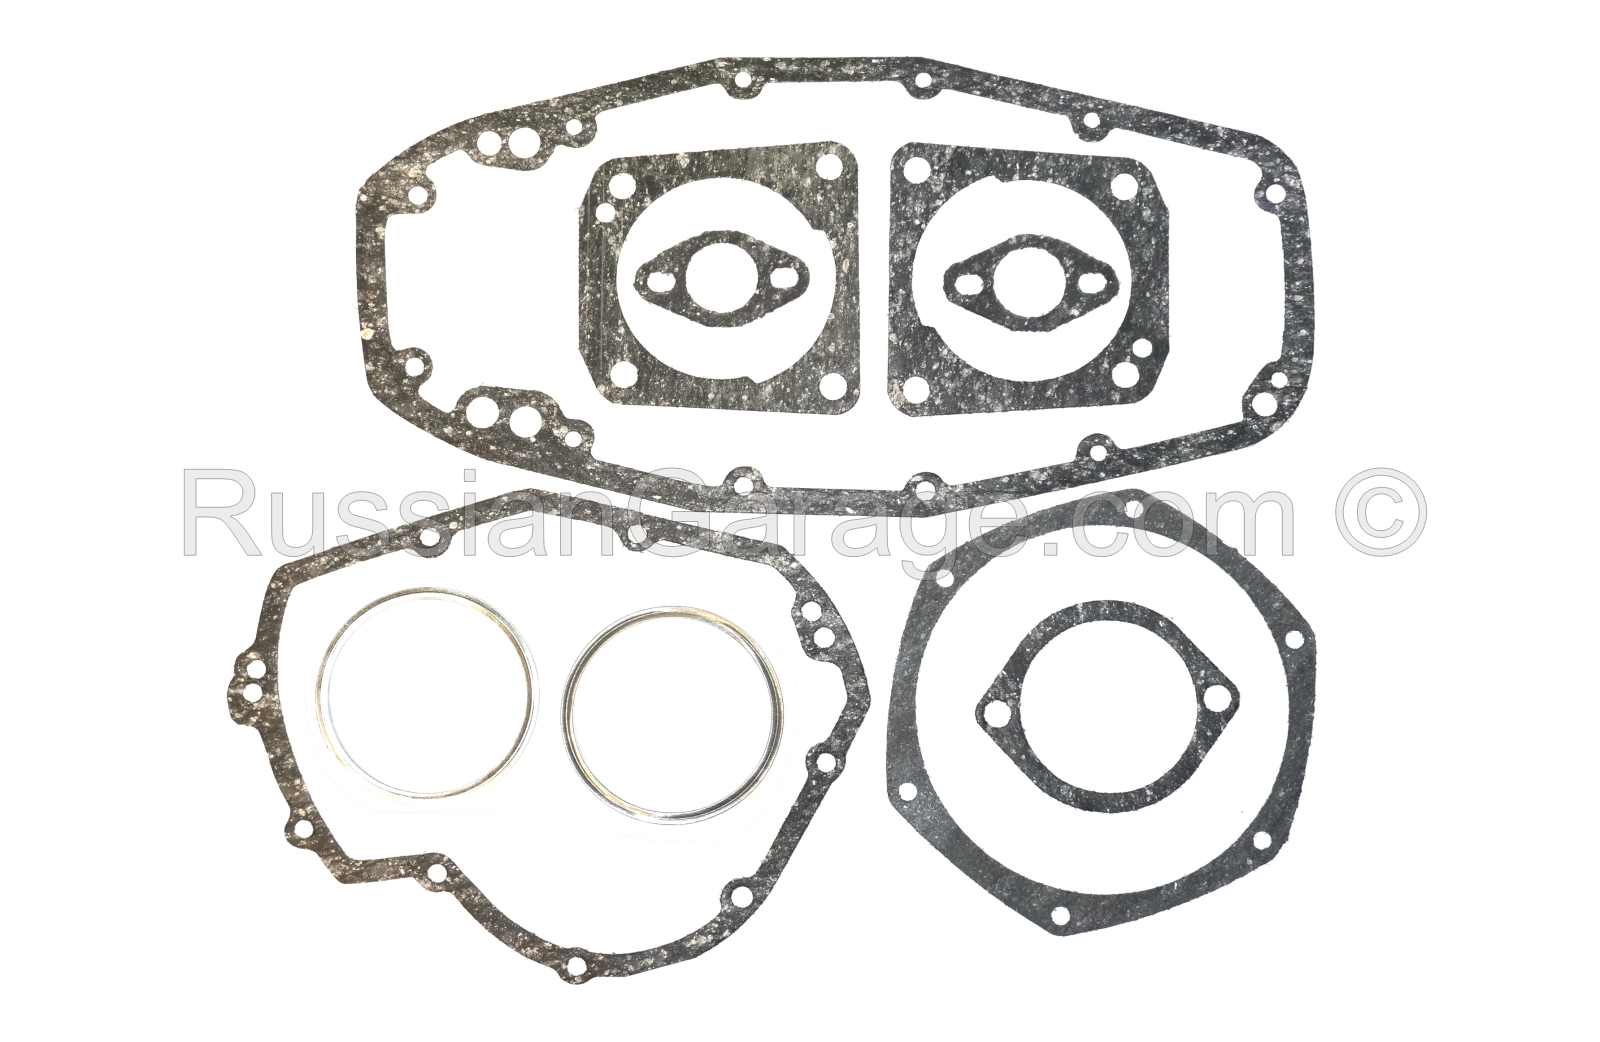 Kit of paronite gaskets for complete engine repair...